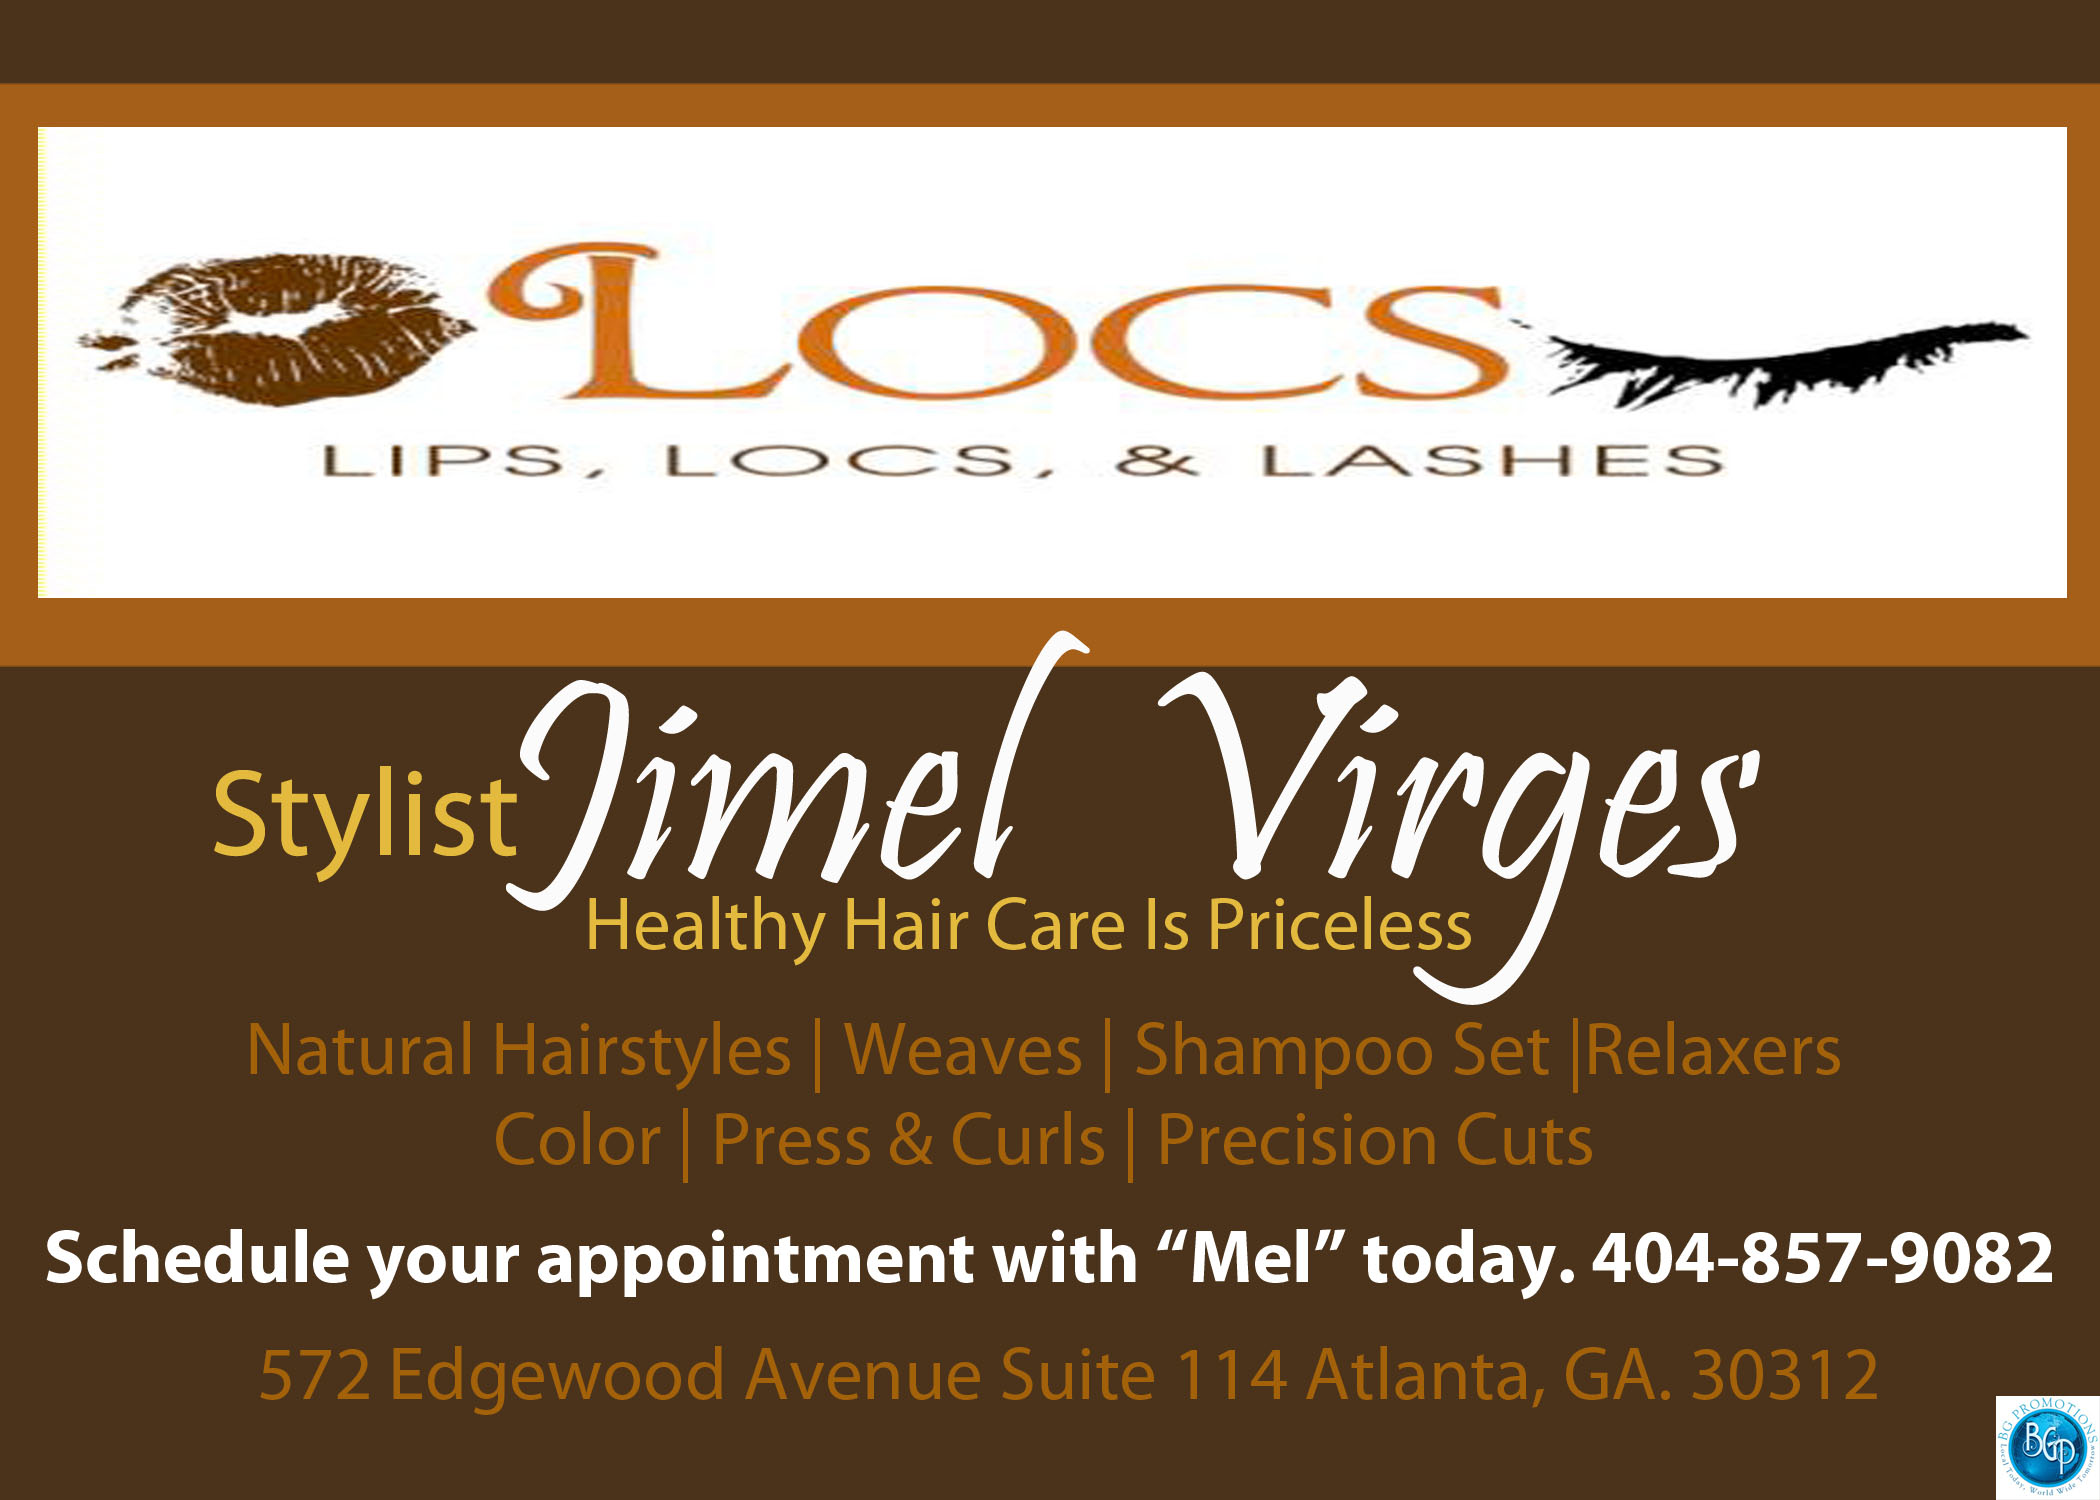 Black Hair Salons | The World of BG Promotions!